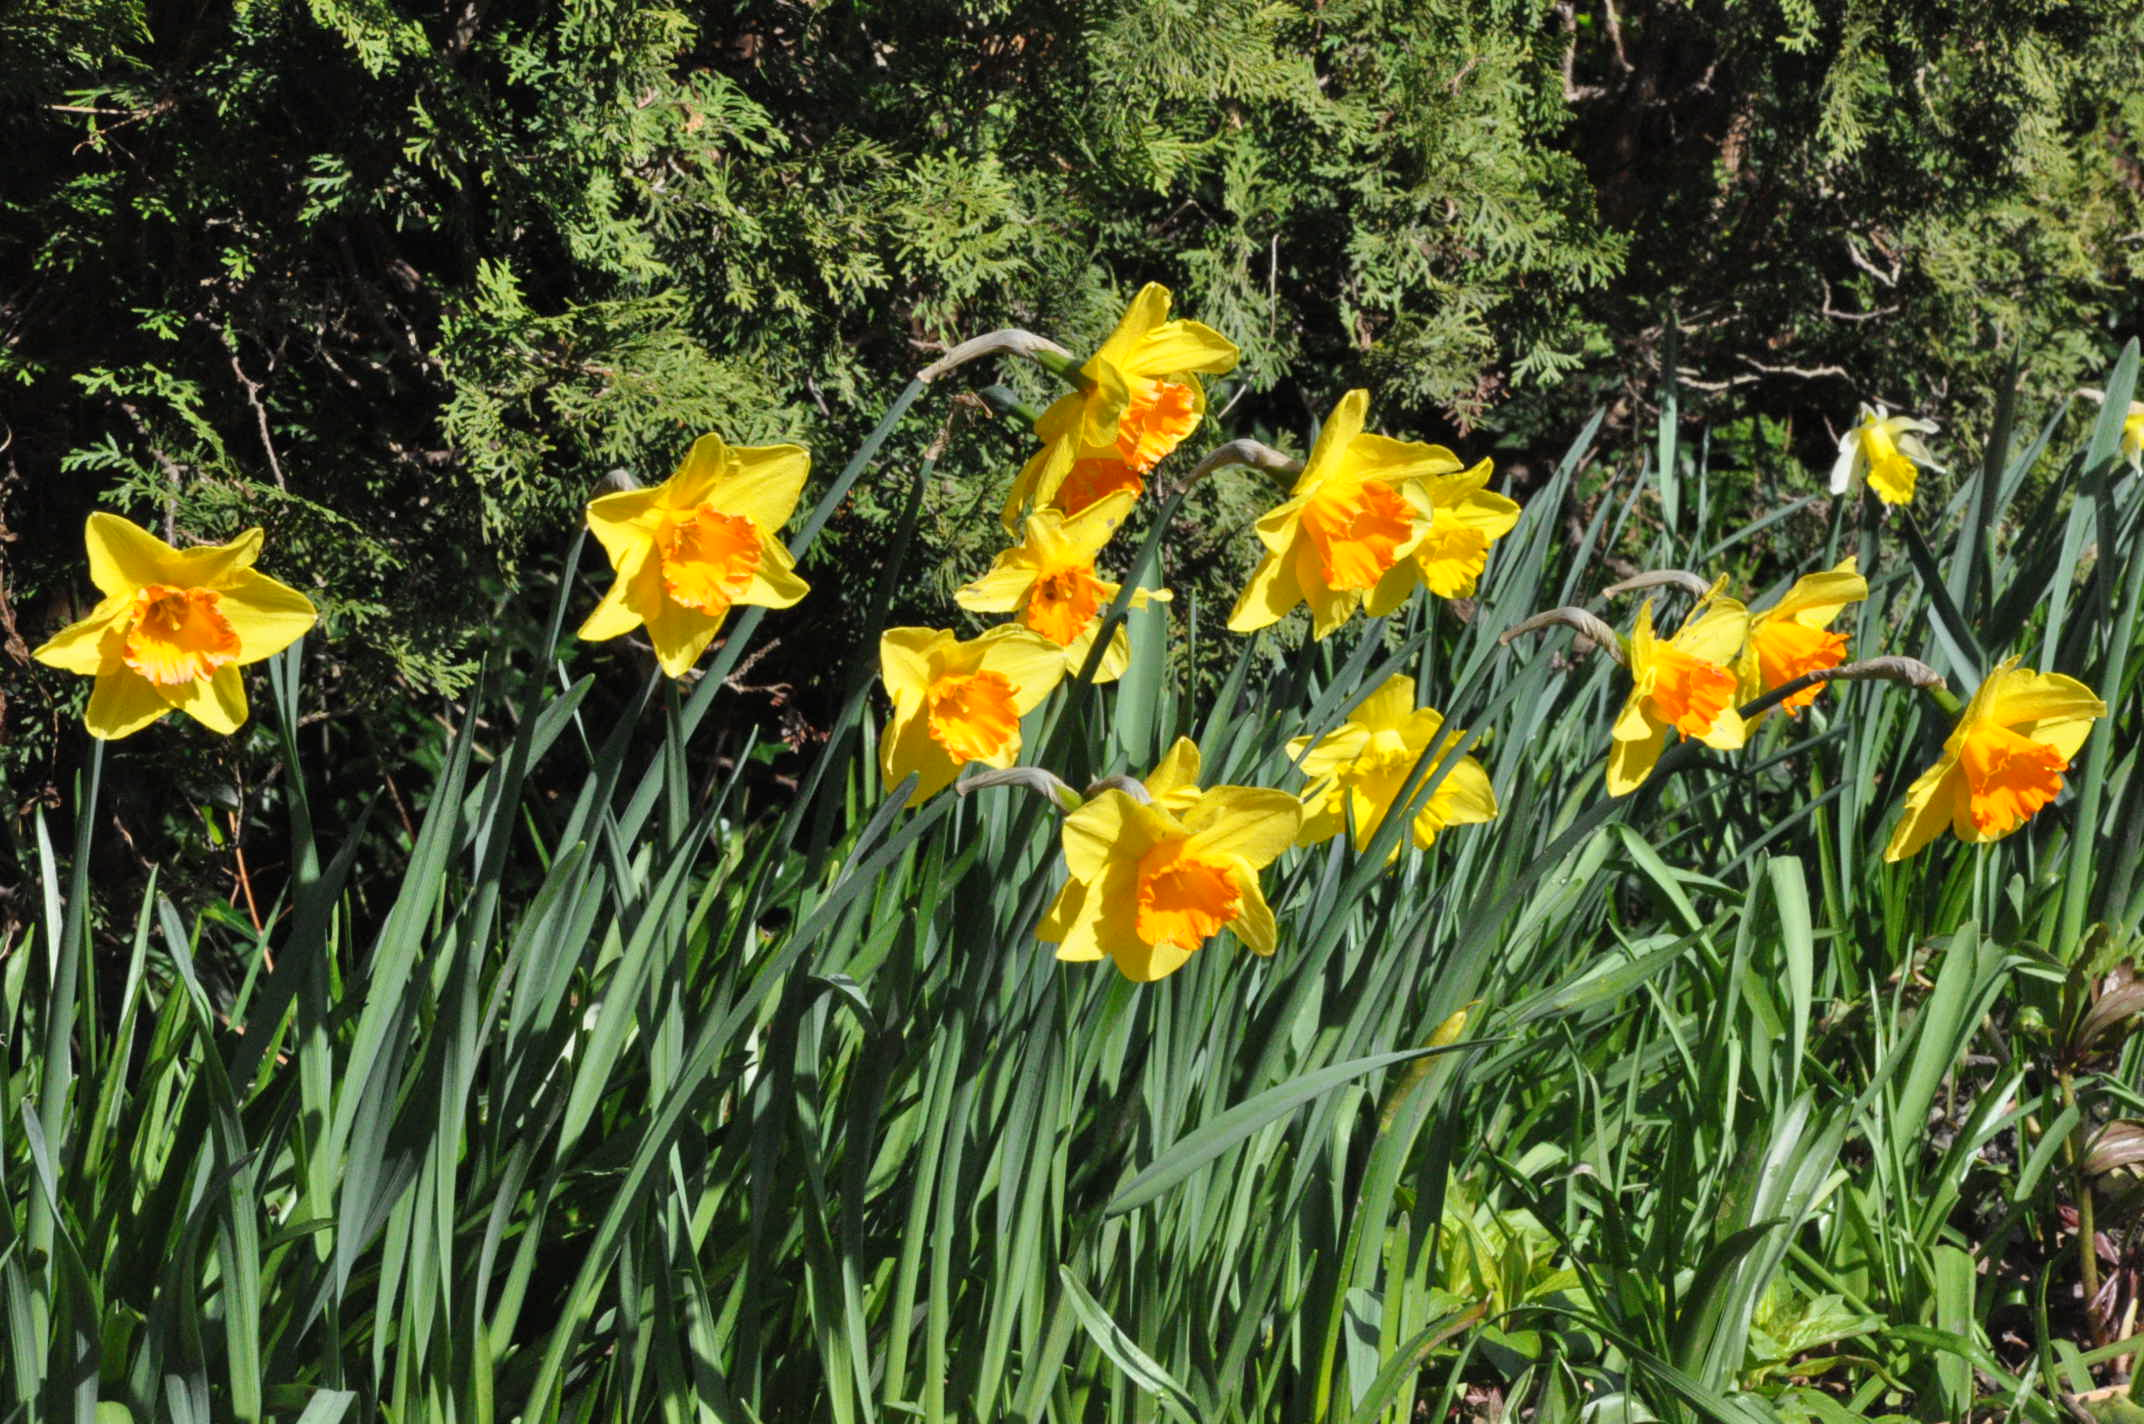 More Daffodils in the Albion Manor Garden